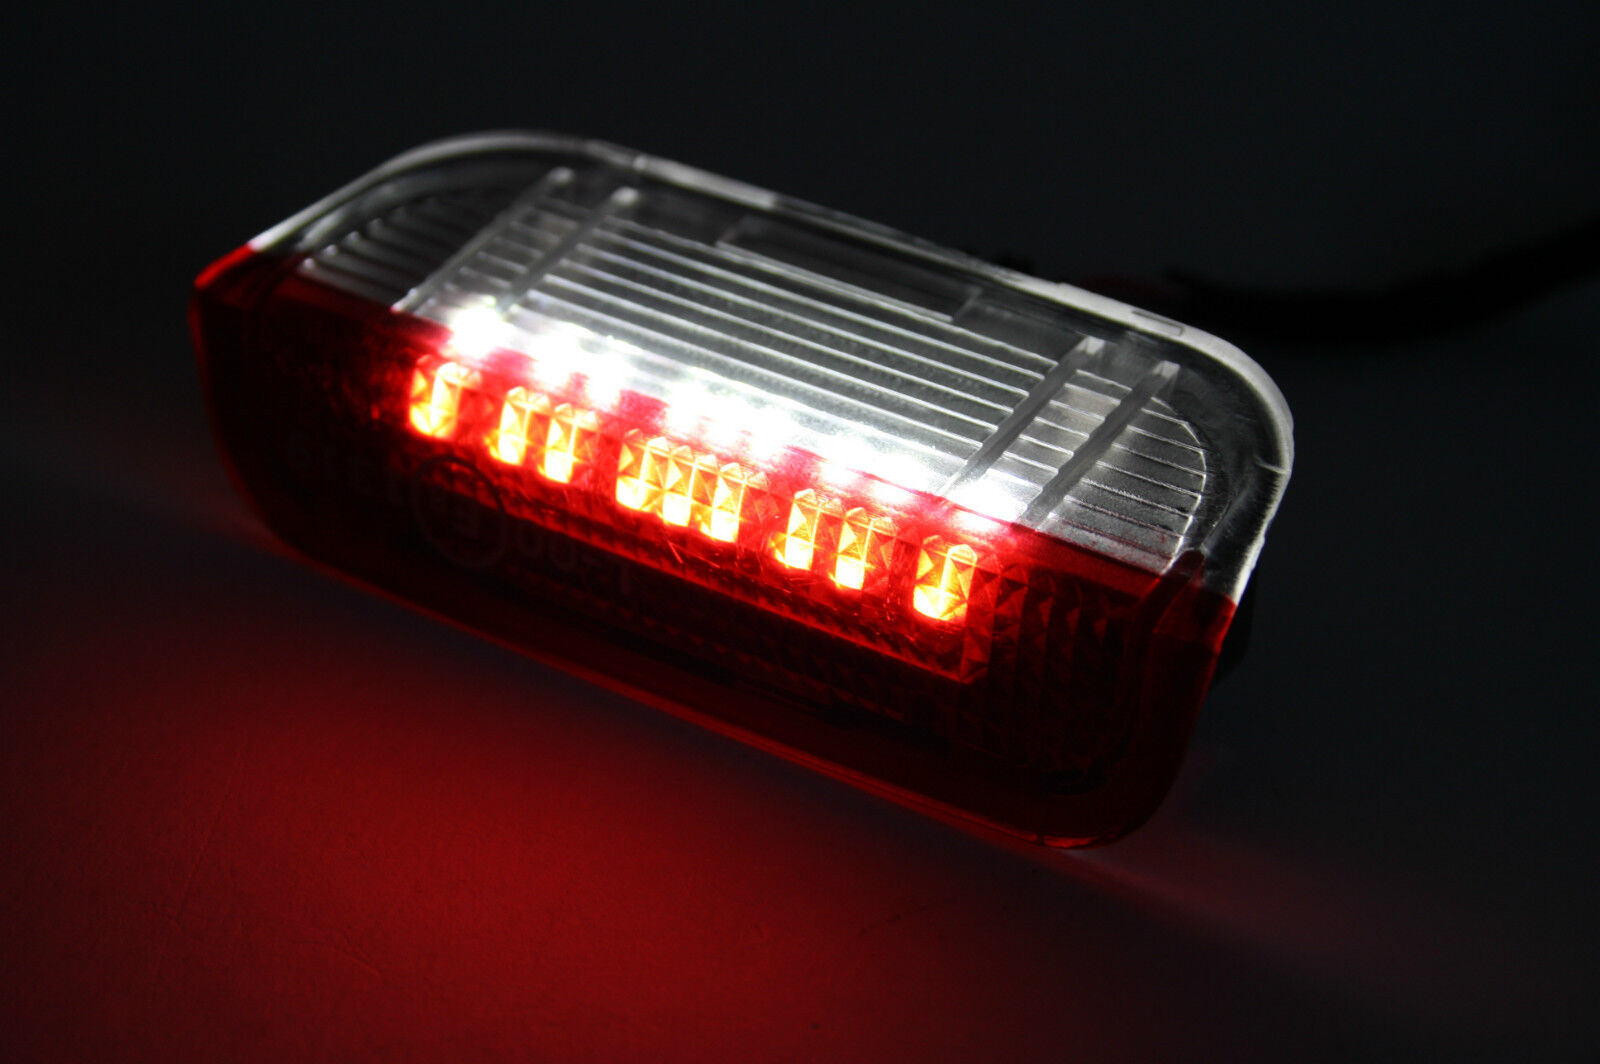 2x LED porta Türbeleuchtung entry-level illuminazione palude luce Can-Bus rosso bianco a552